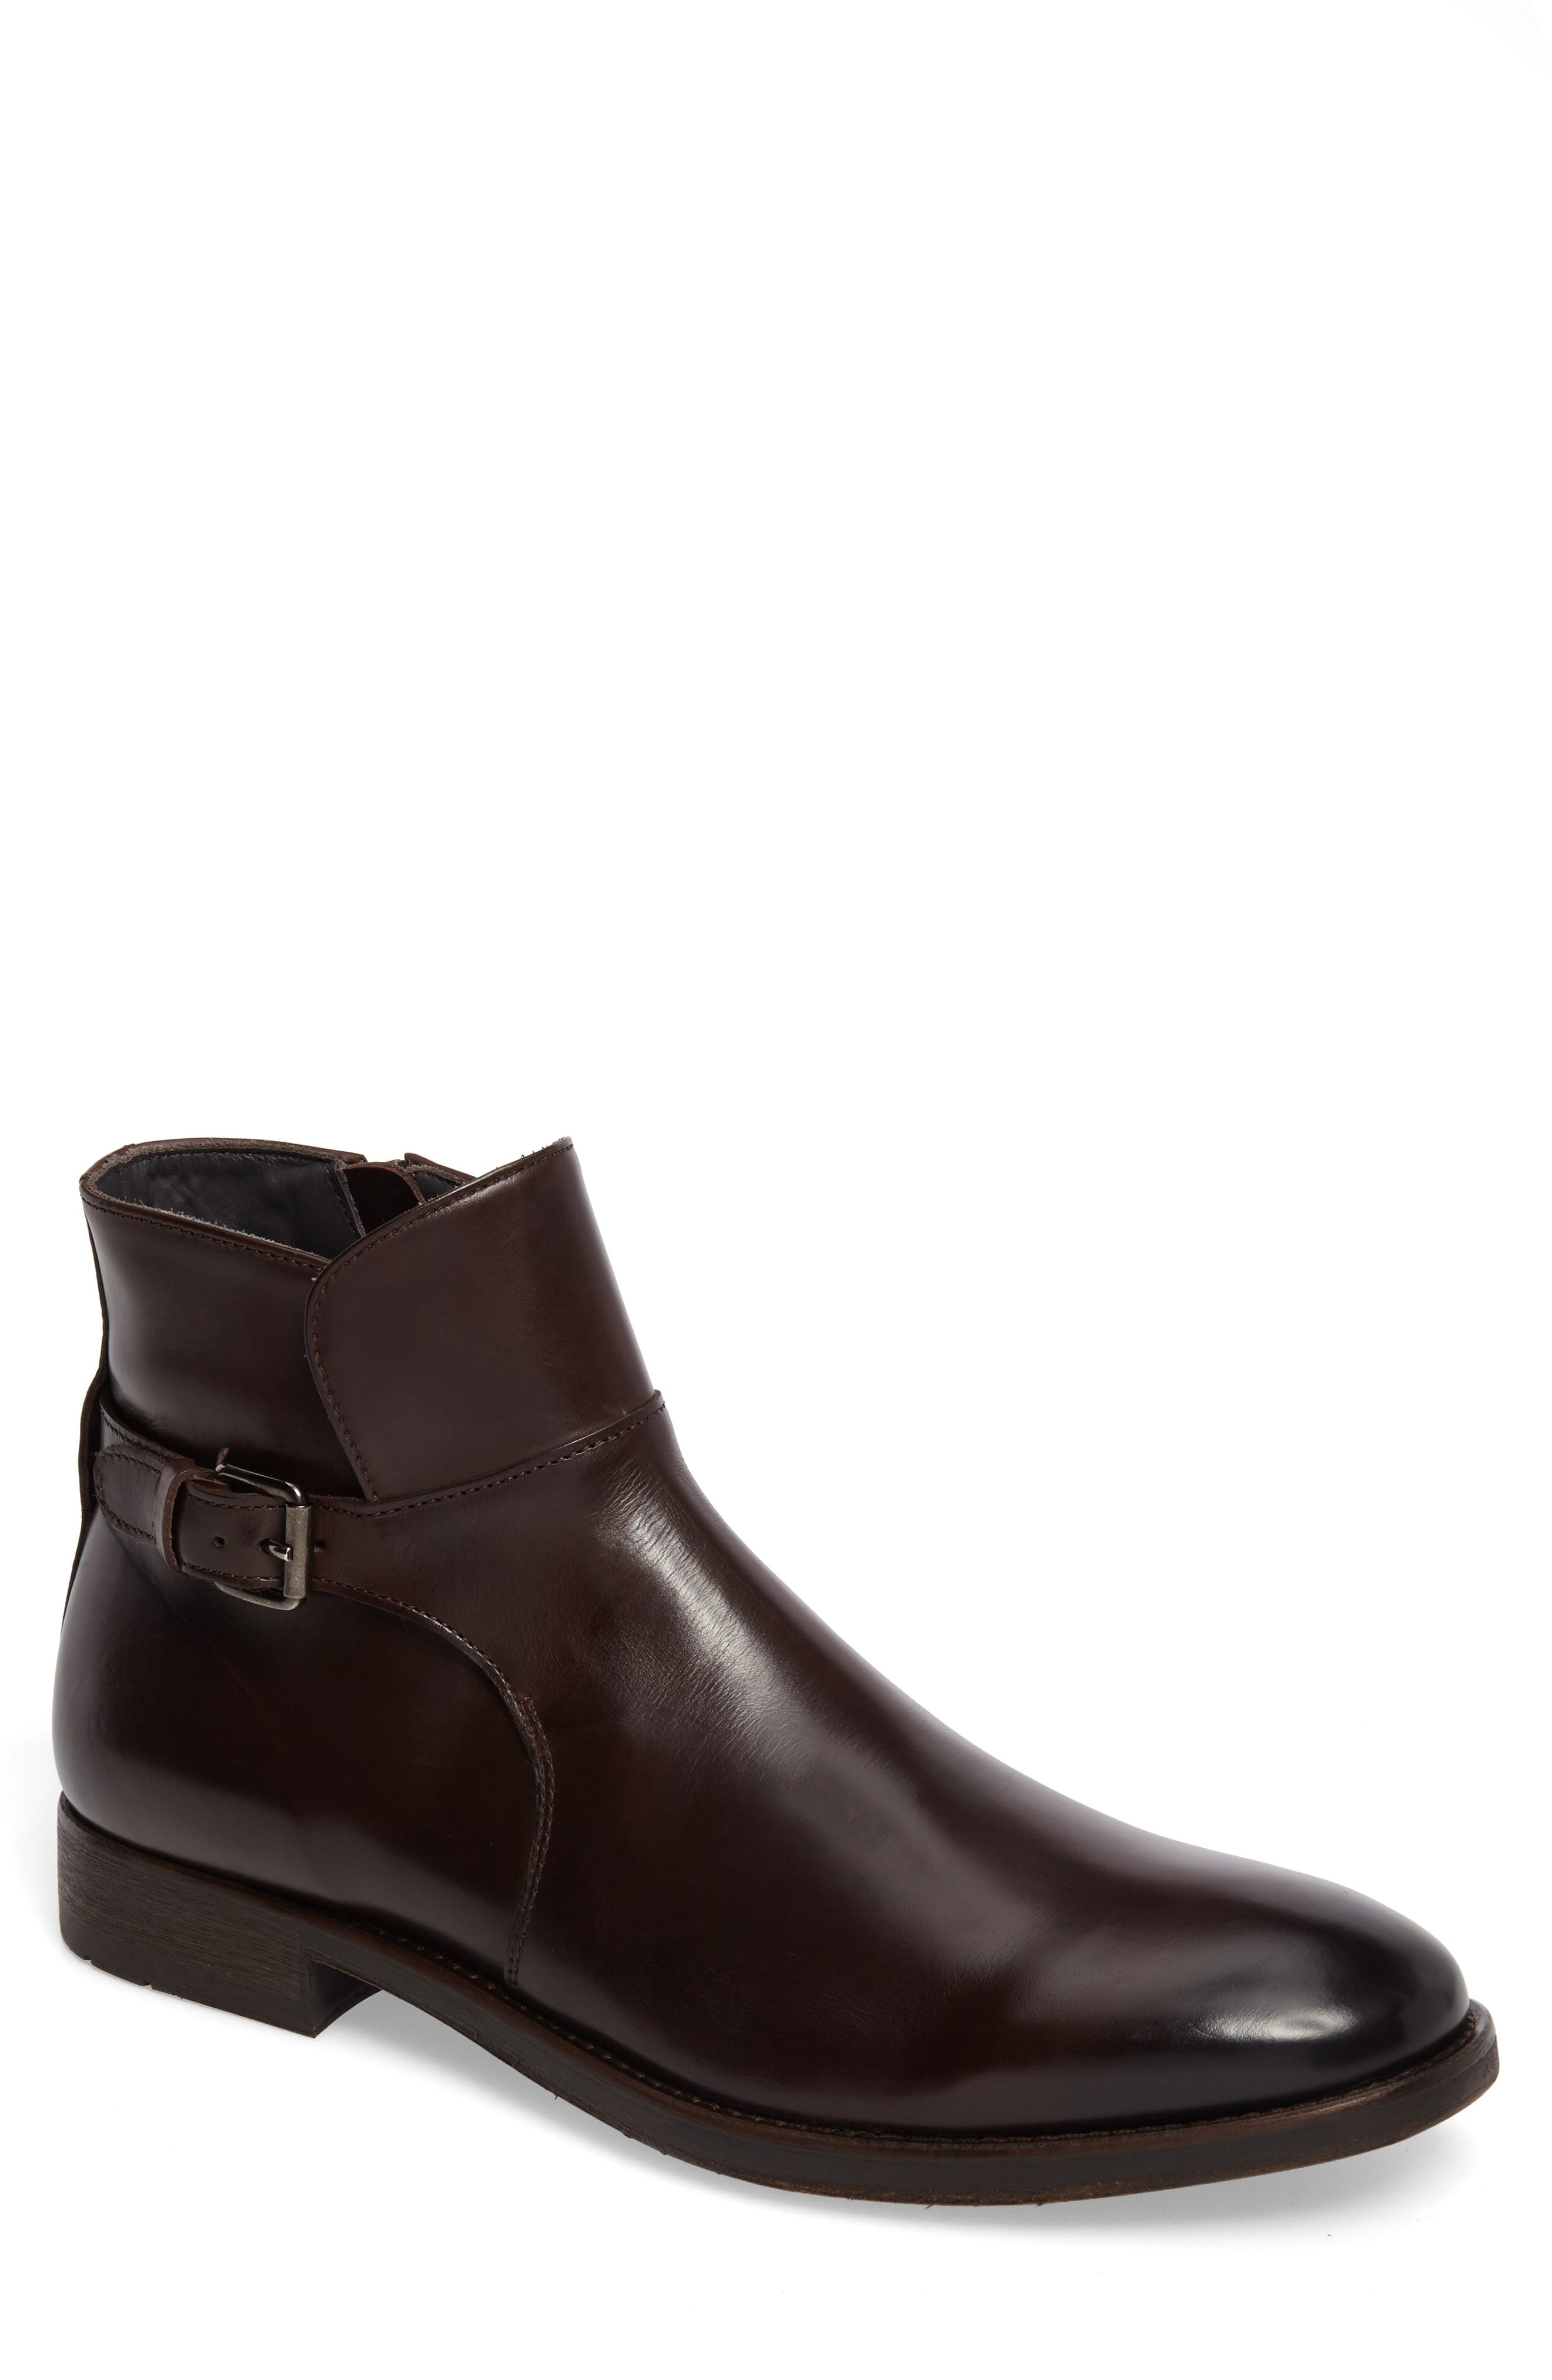 Heath Zip Boot,                         Main,                         color, Moro